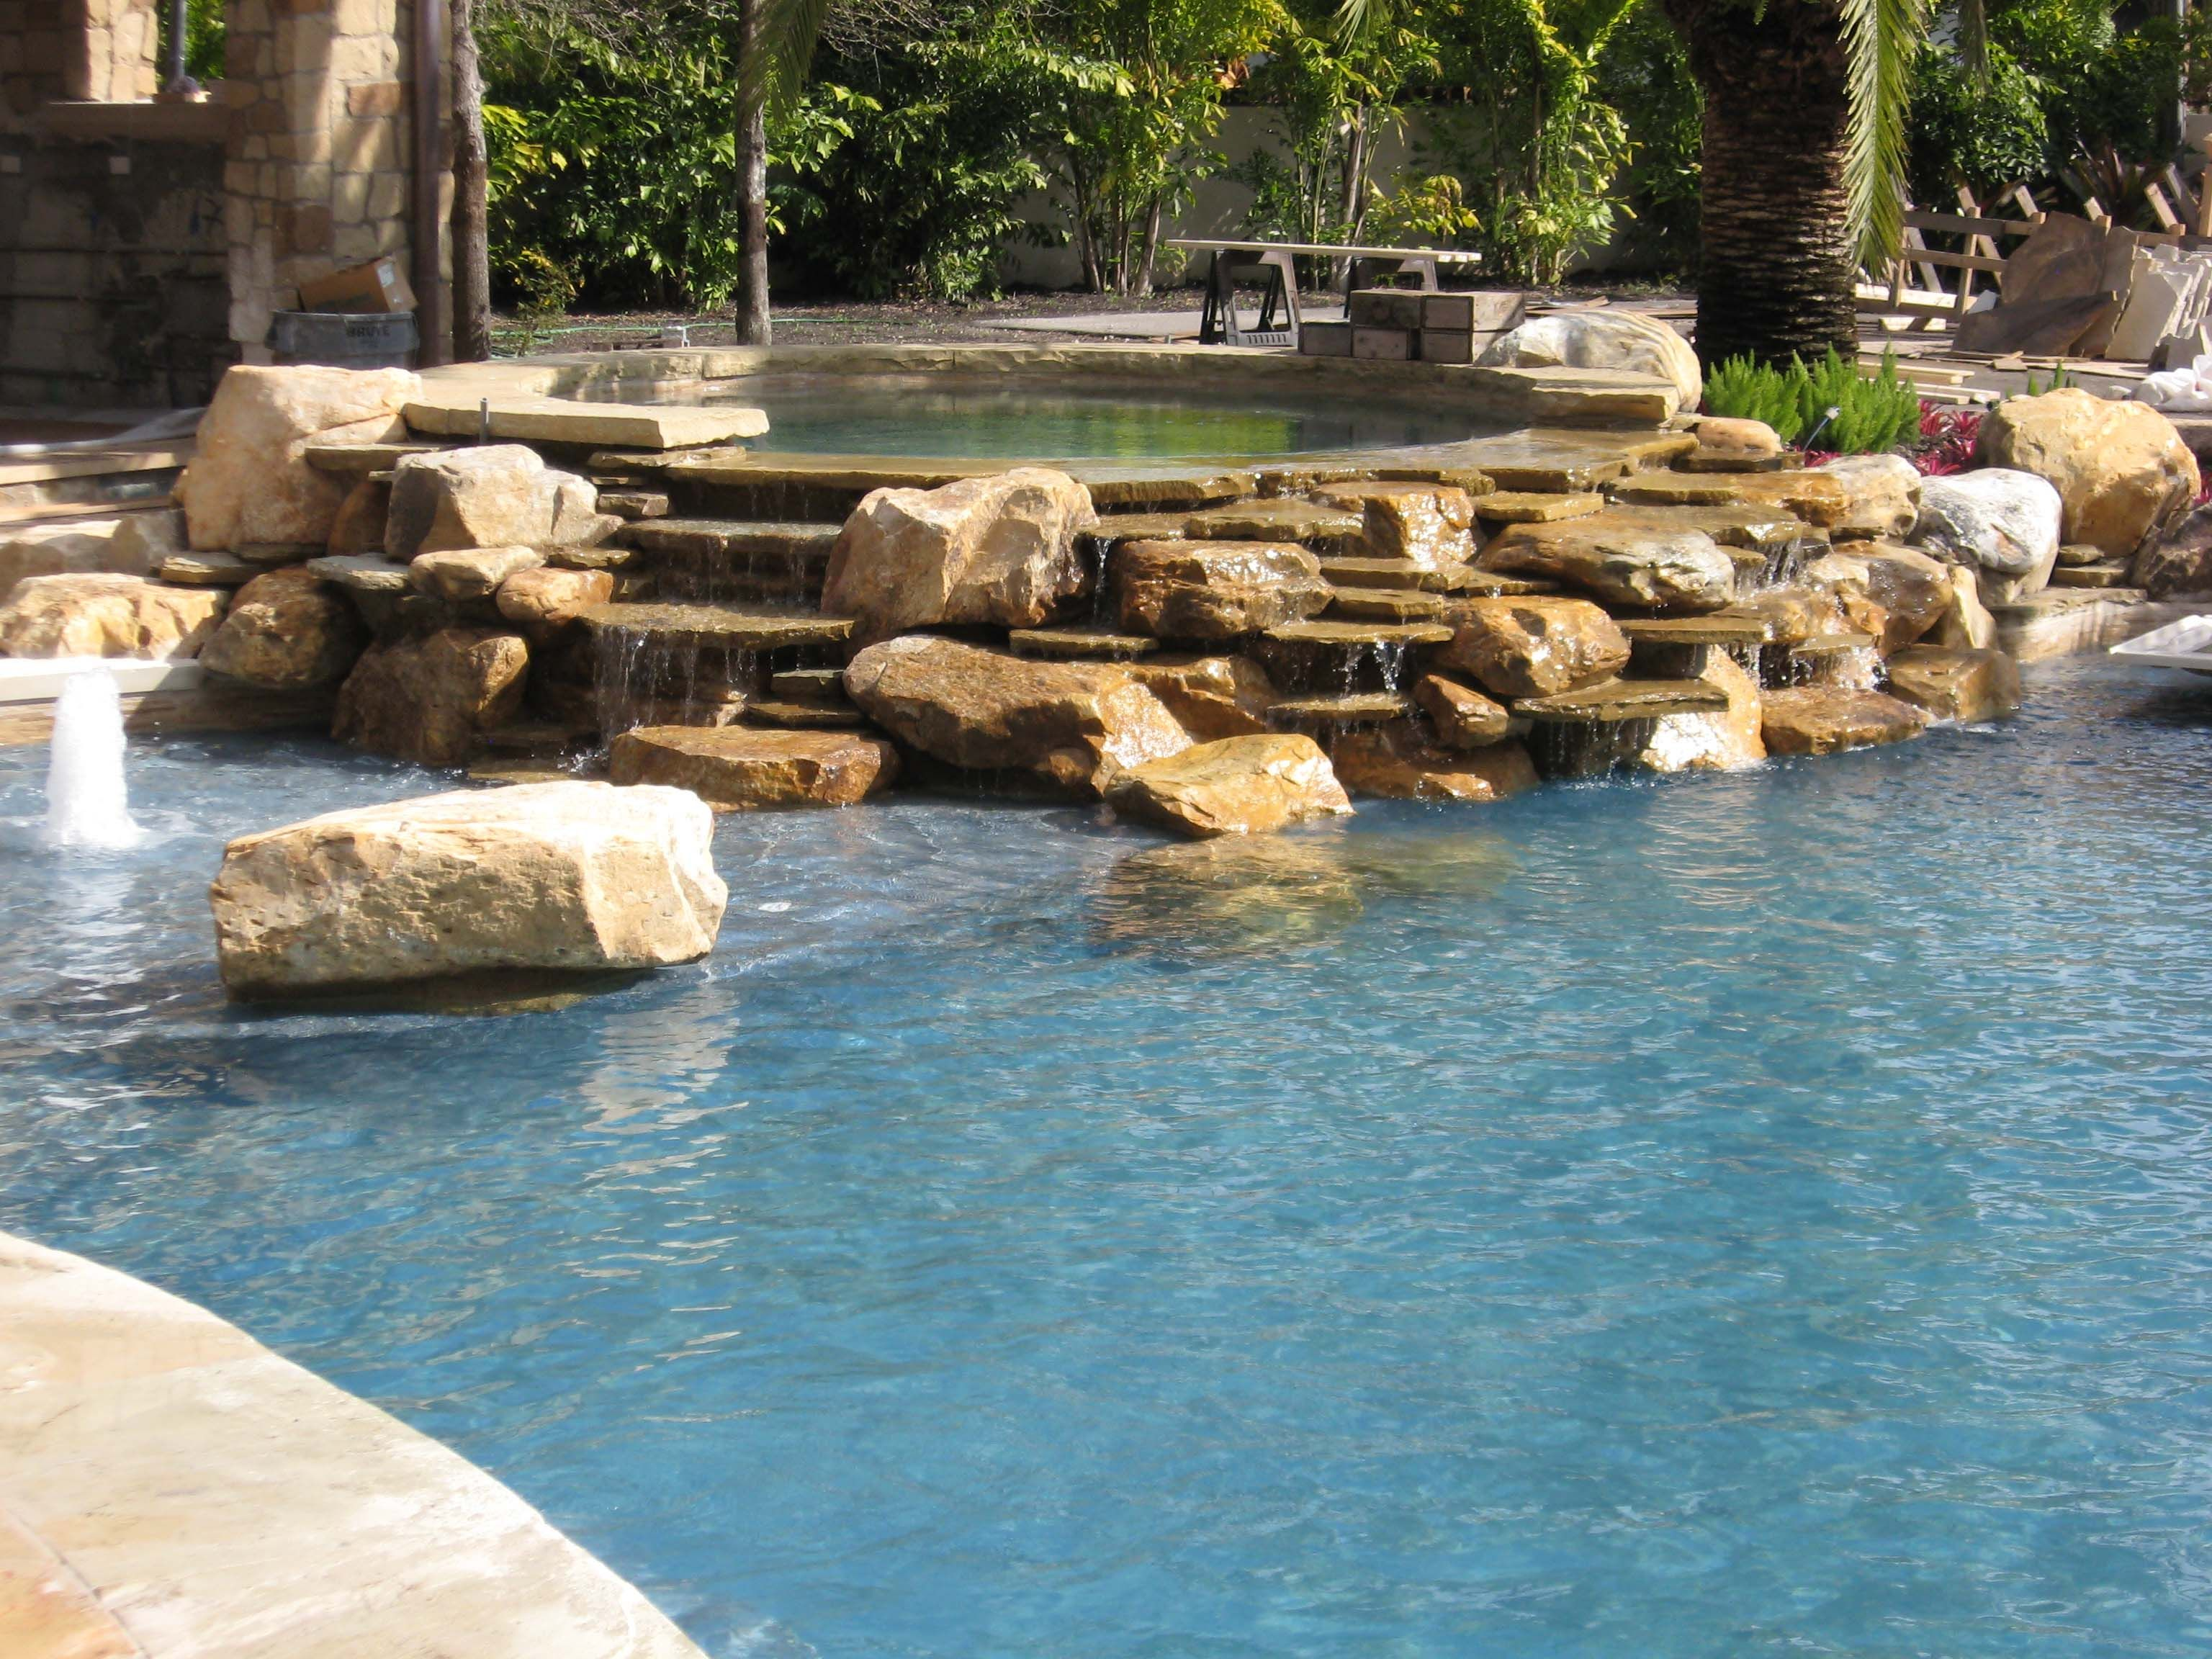 Jacuzzi Swimming Pool Uk Exotic Stone Hot Tubs And Pools Stone Hot Tub Waterfall